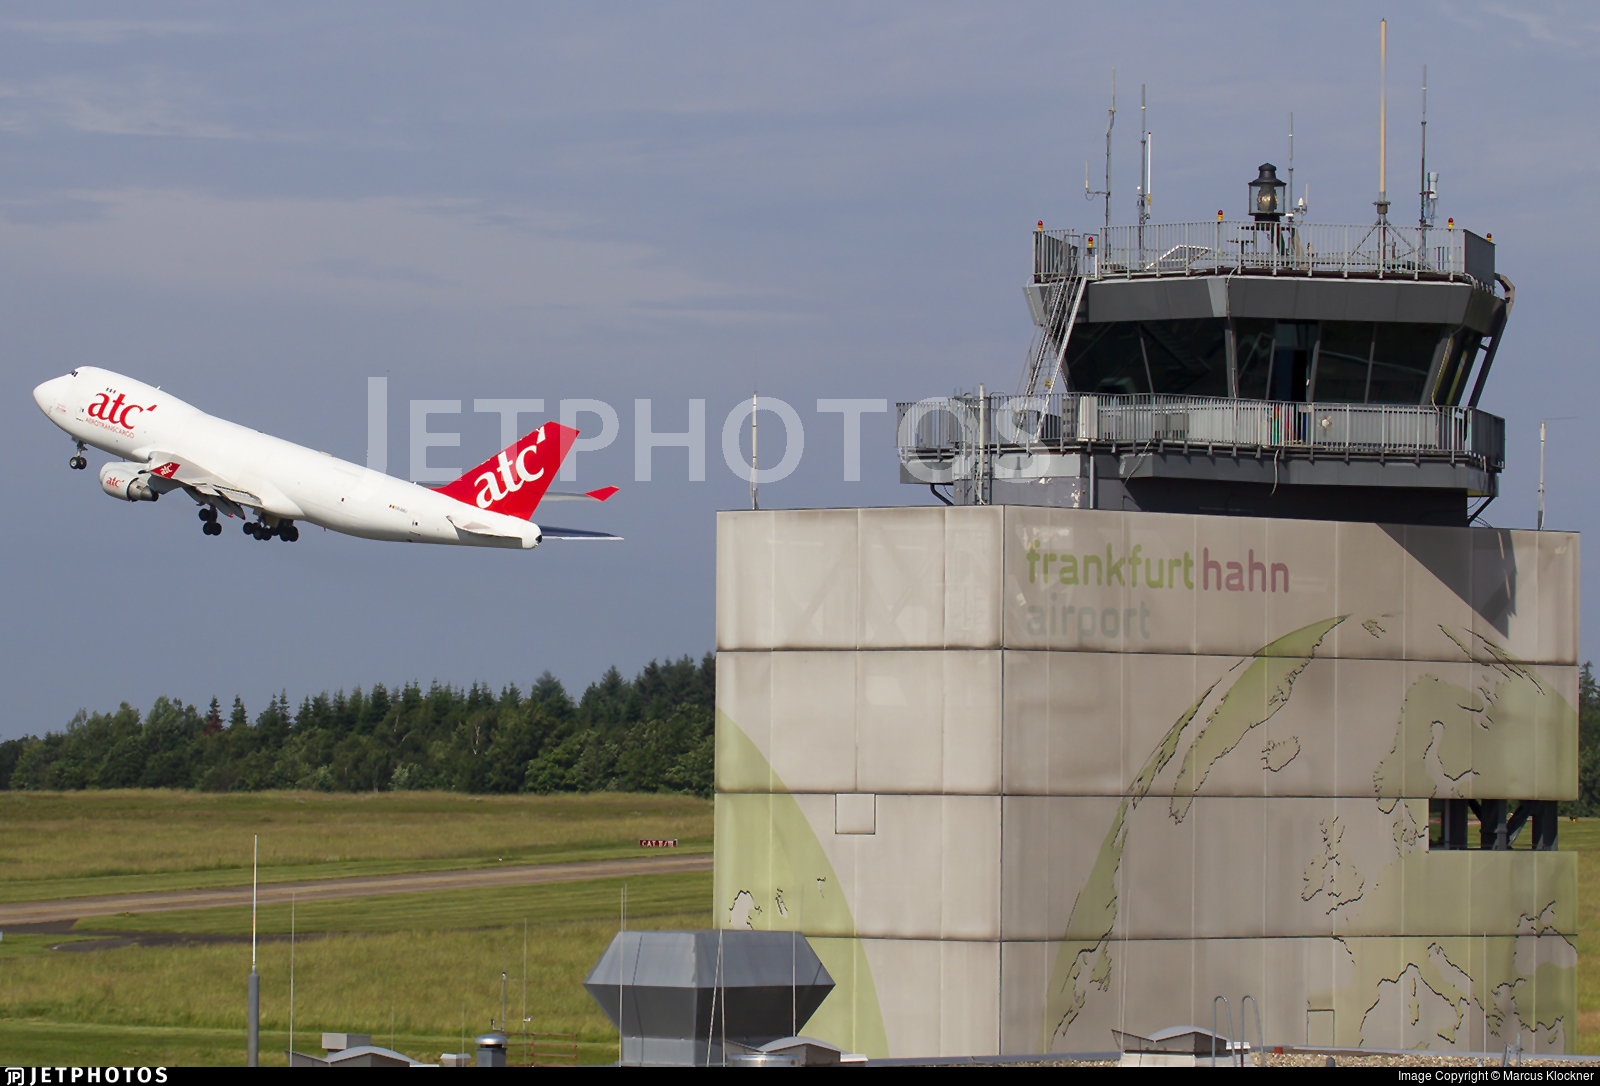 EDFH - Airport - Control Tower